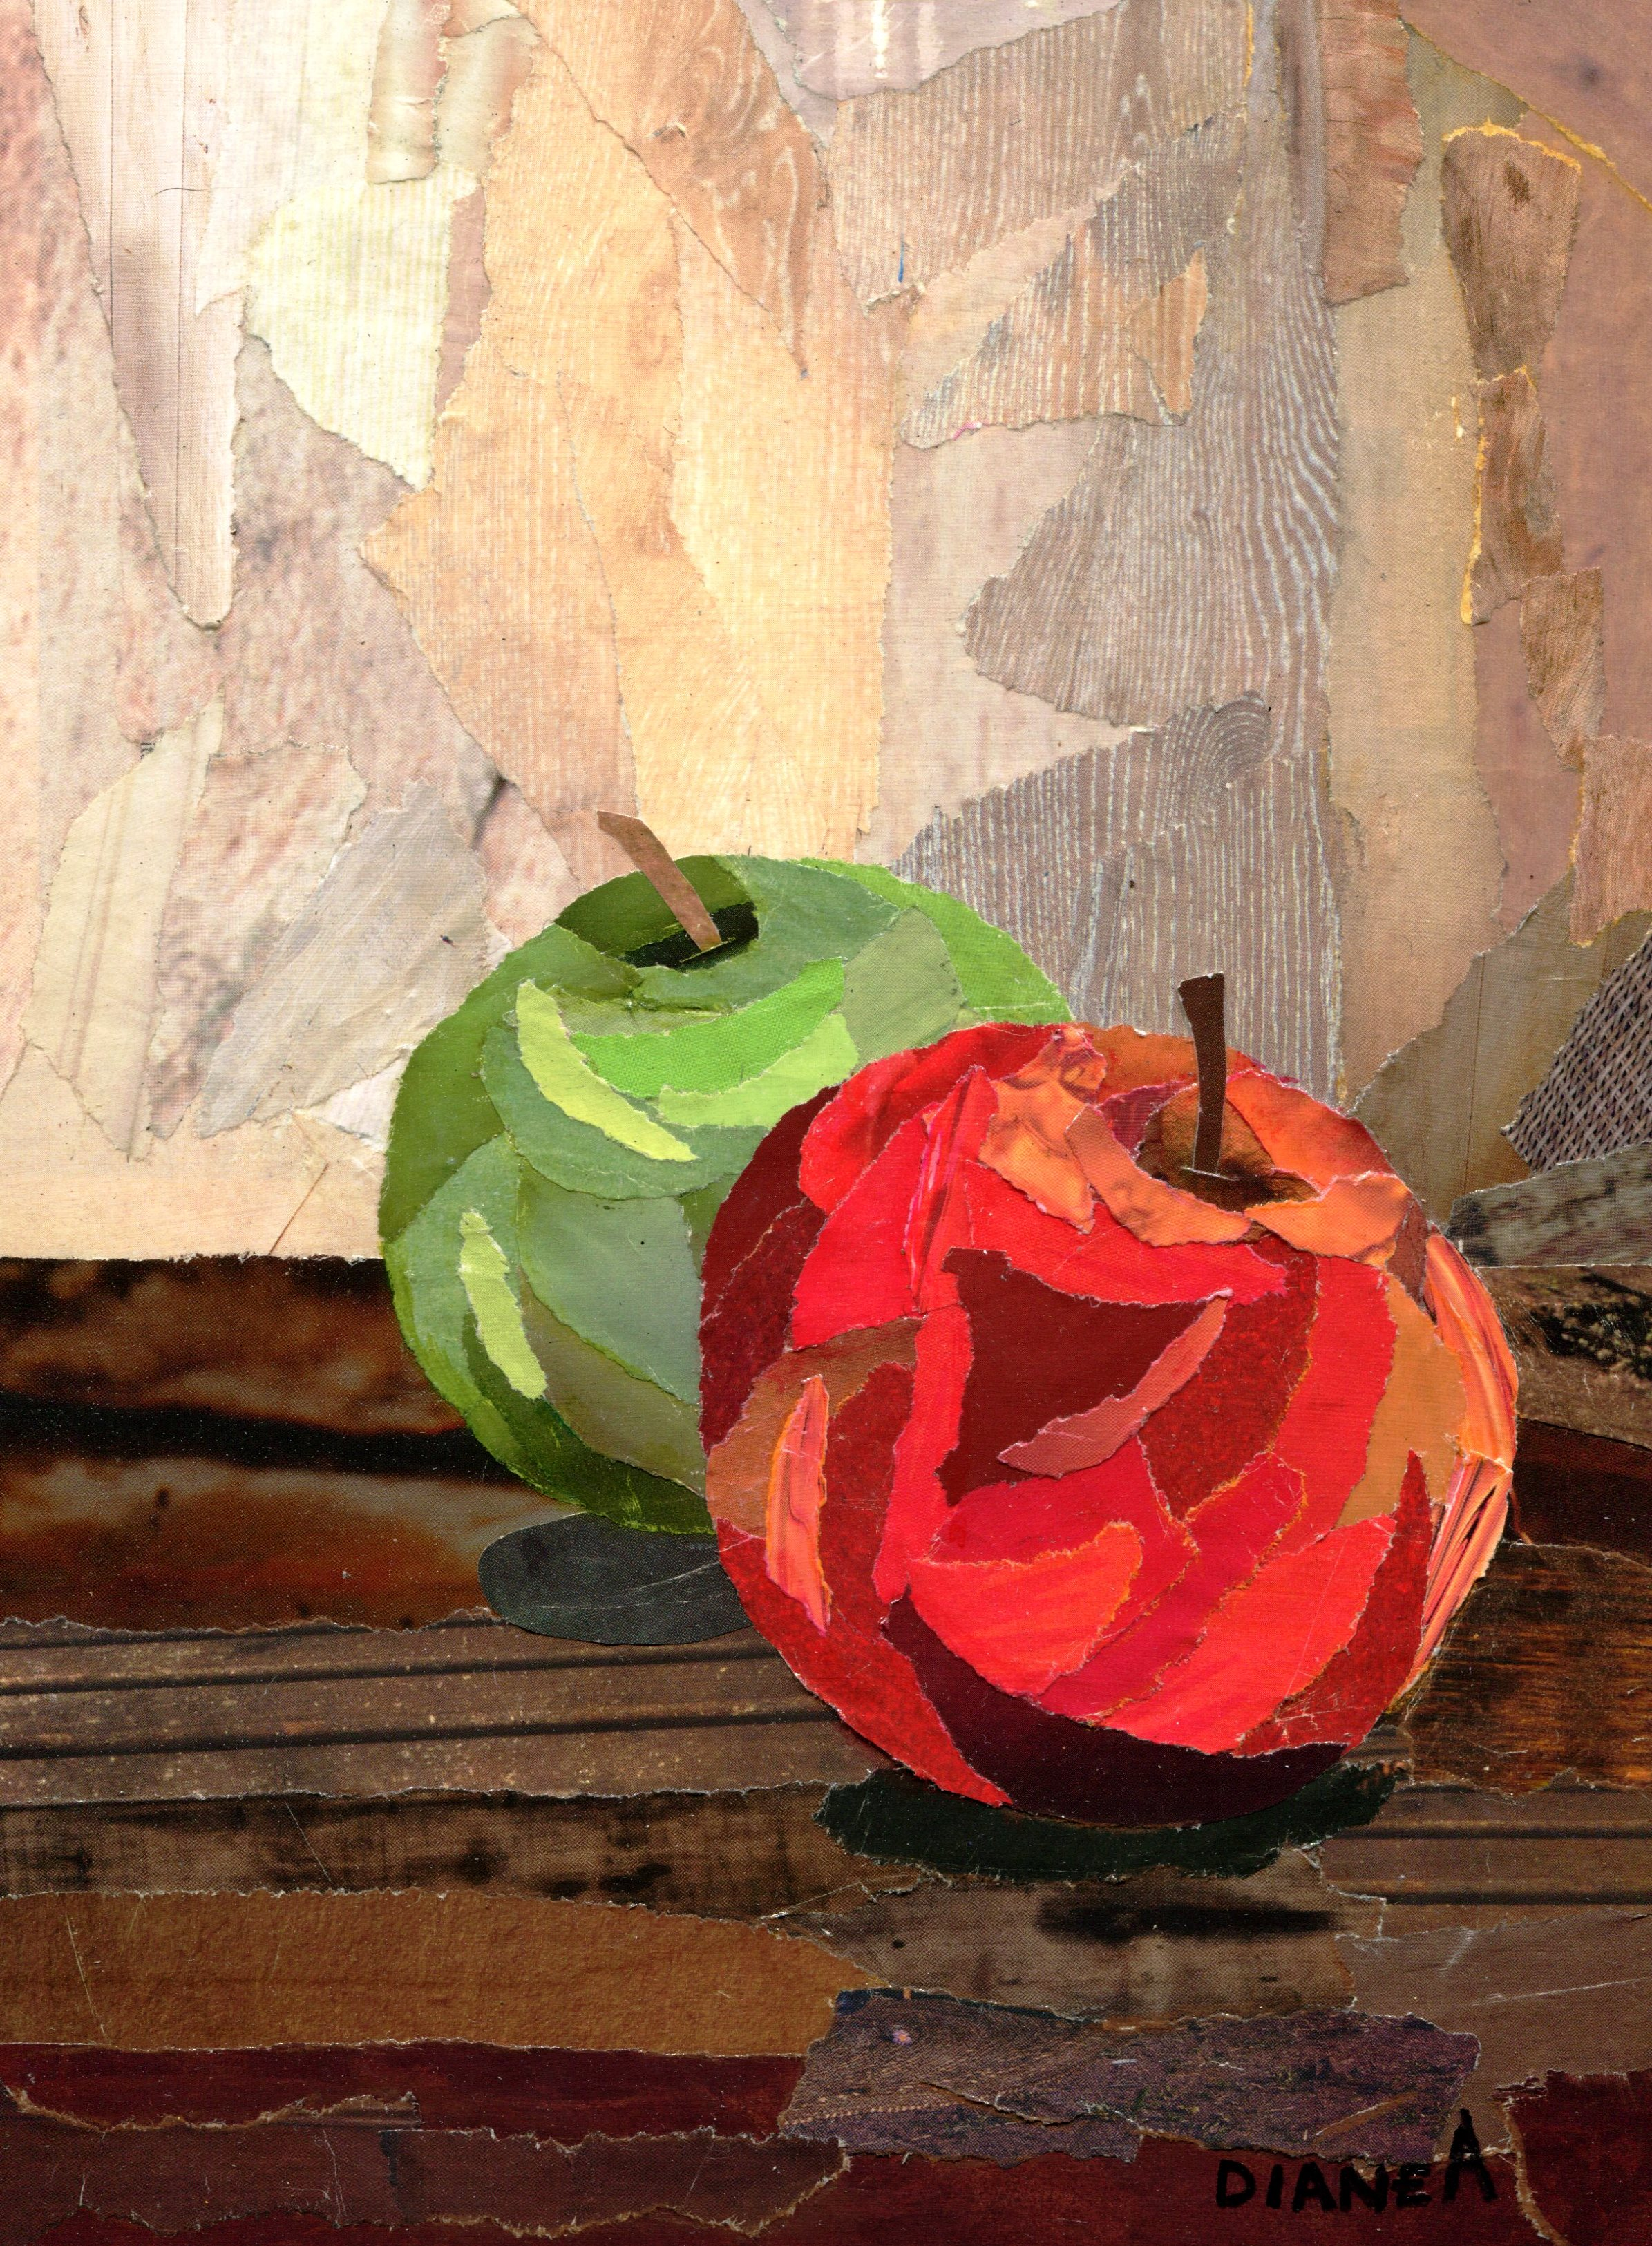 40B DIANE ALDWORTH, APPLES, PAPER COLLAGE ON BOARD